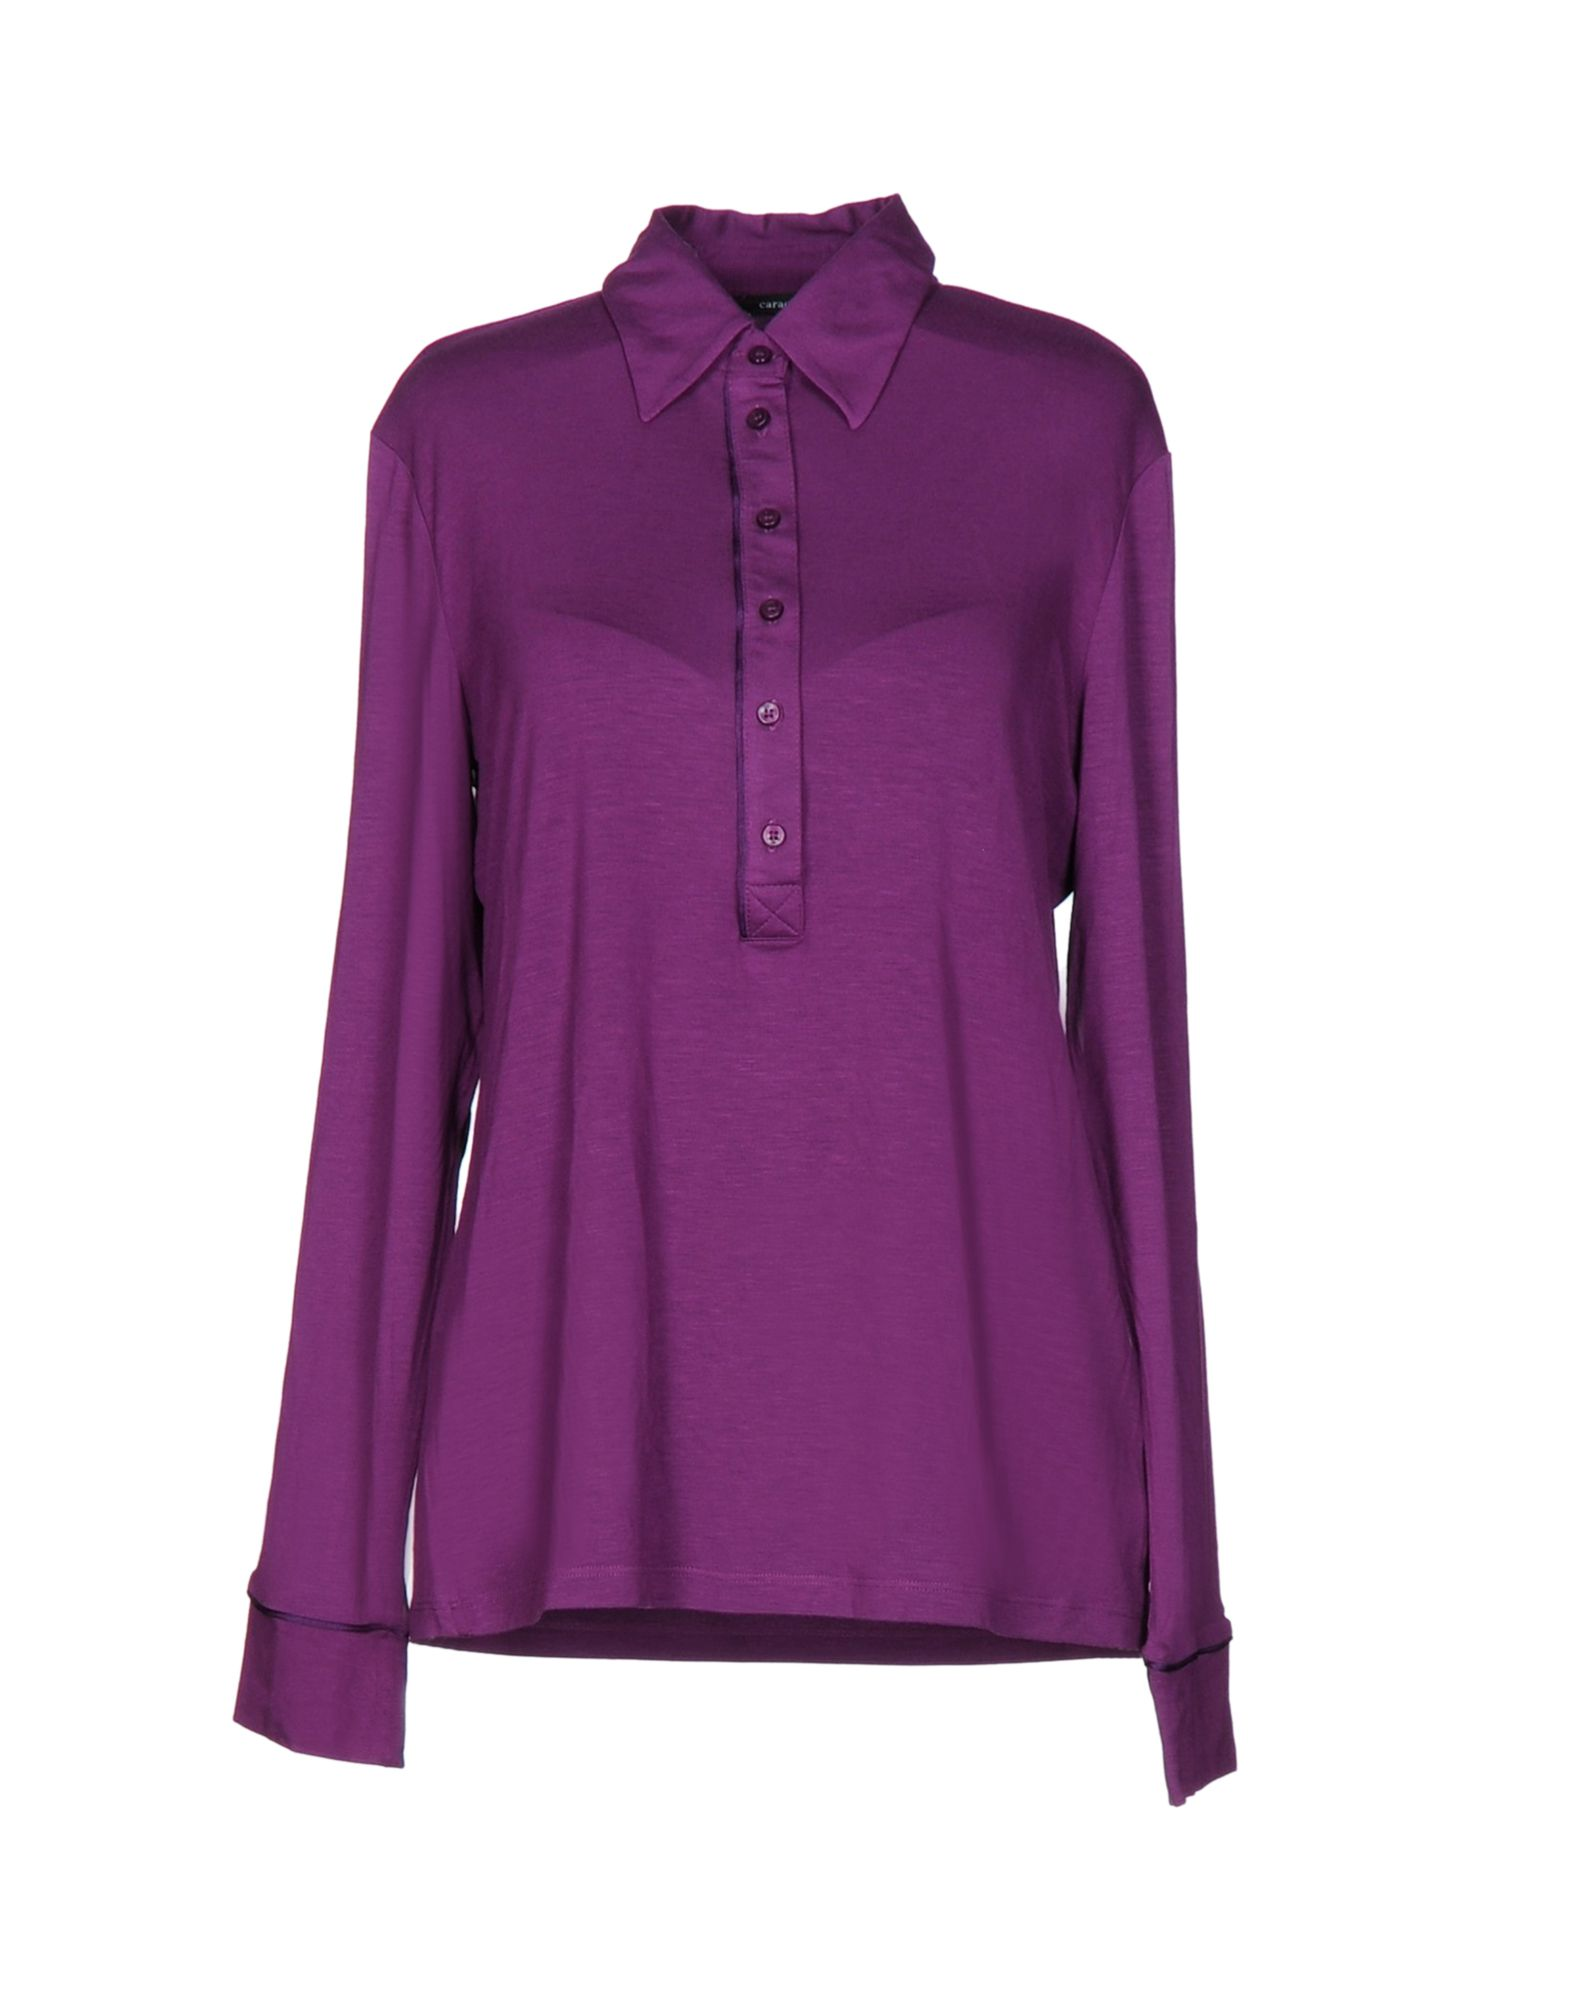 caractere female caractere polo shirts